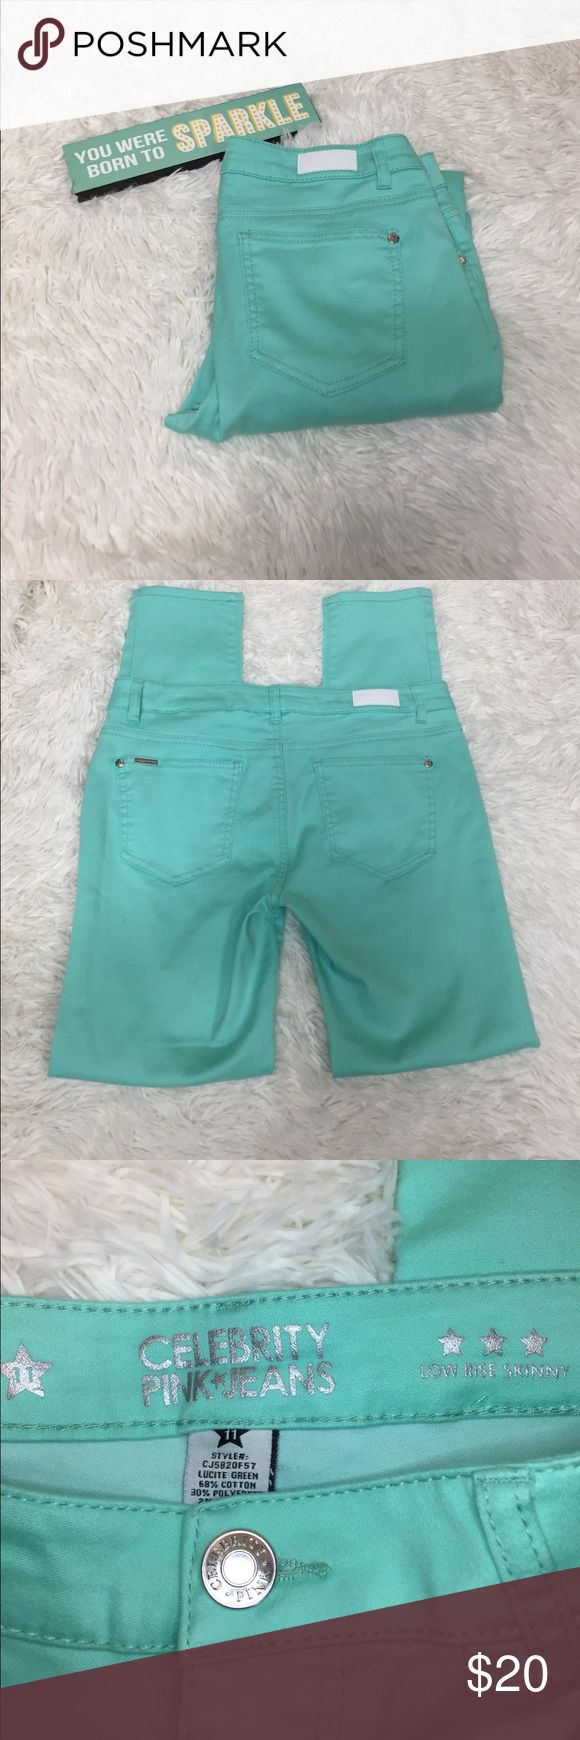 Celebrity pink jeans mint green low rise skinny 11 Celebrity pink jeans mint Green low rise skinny size 11. Lying flat the waist measures 17 inches inseam 31 inches. Excellent condition. Celebrity Pink Pants Skinny